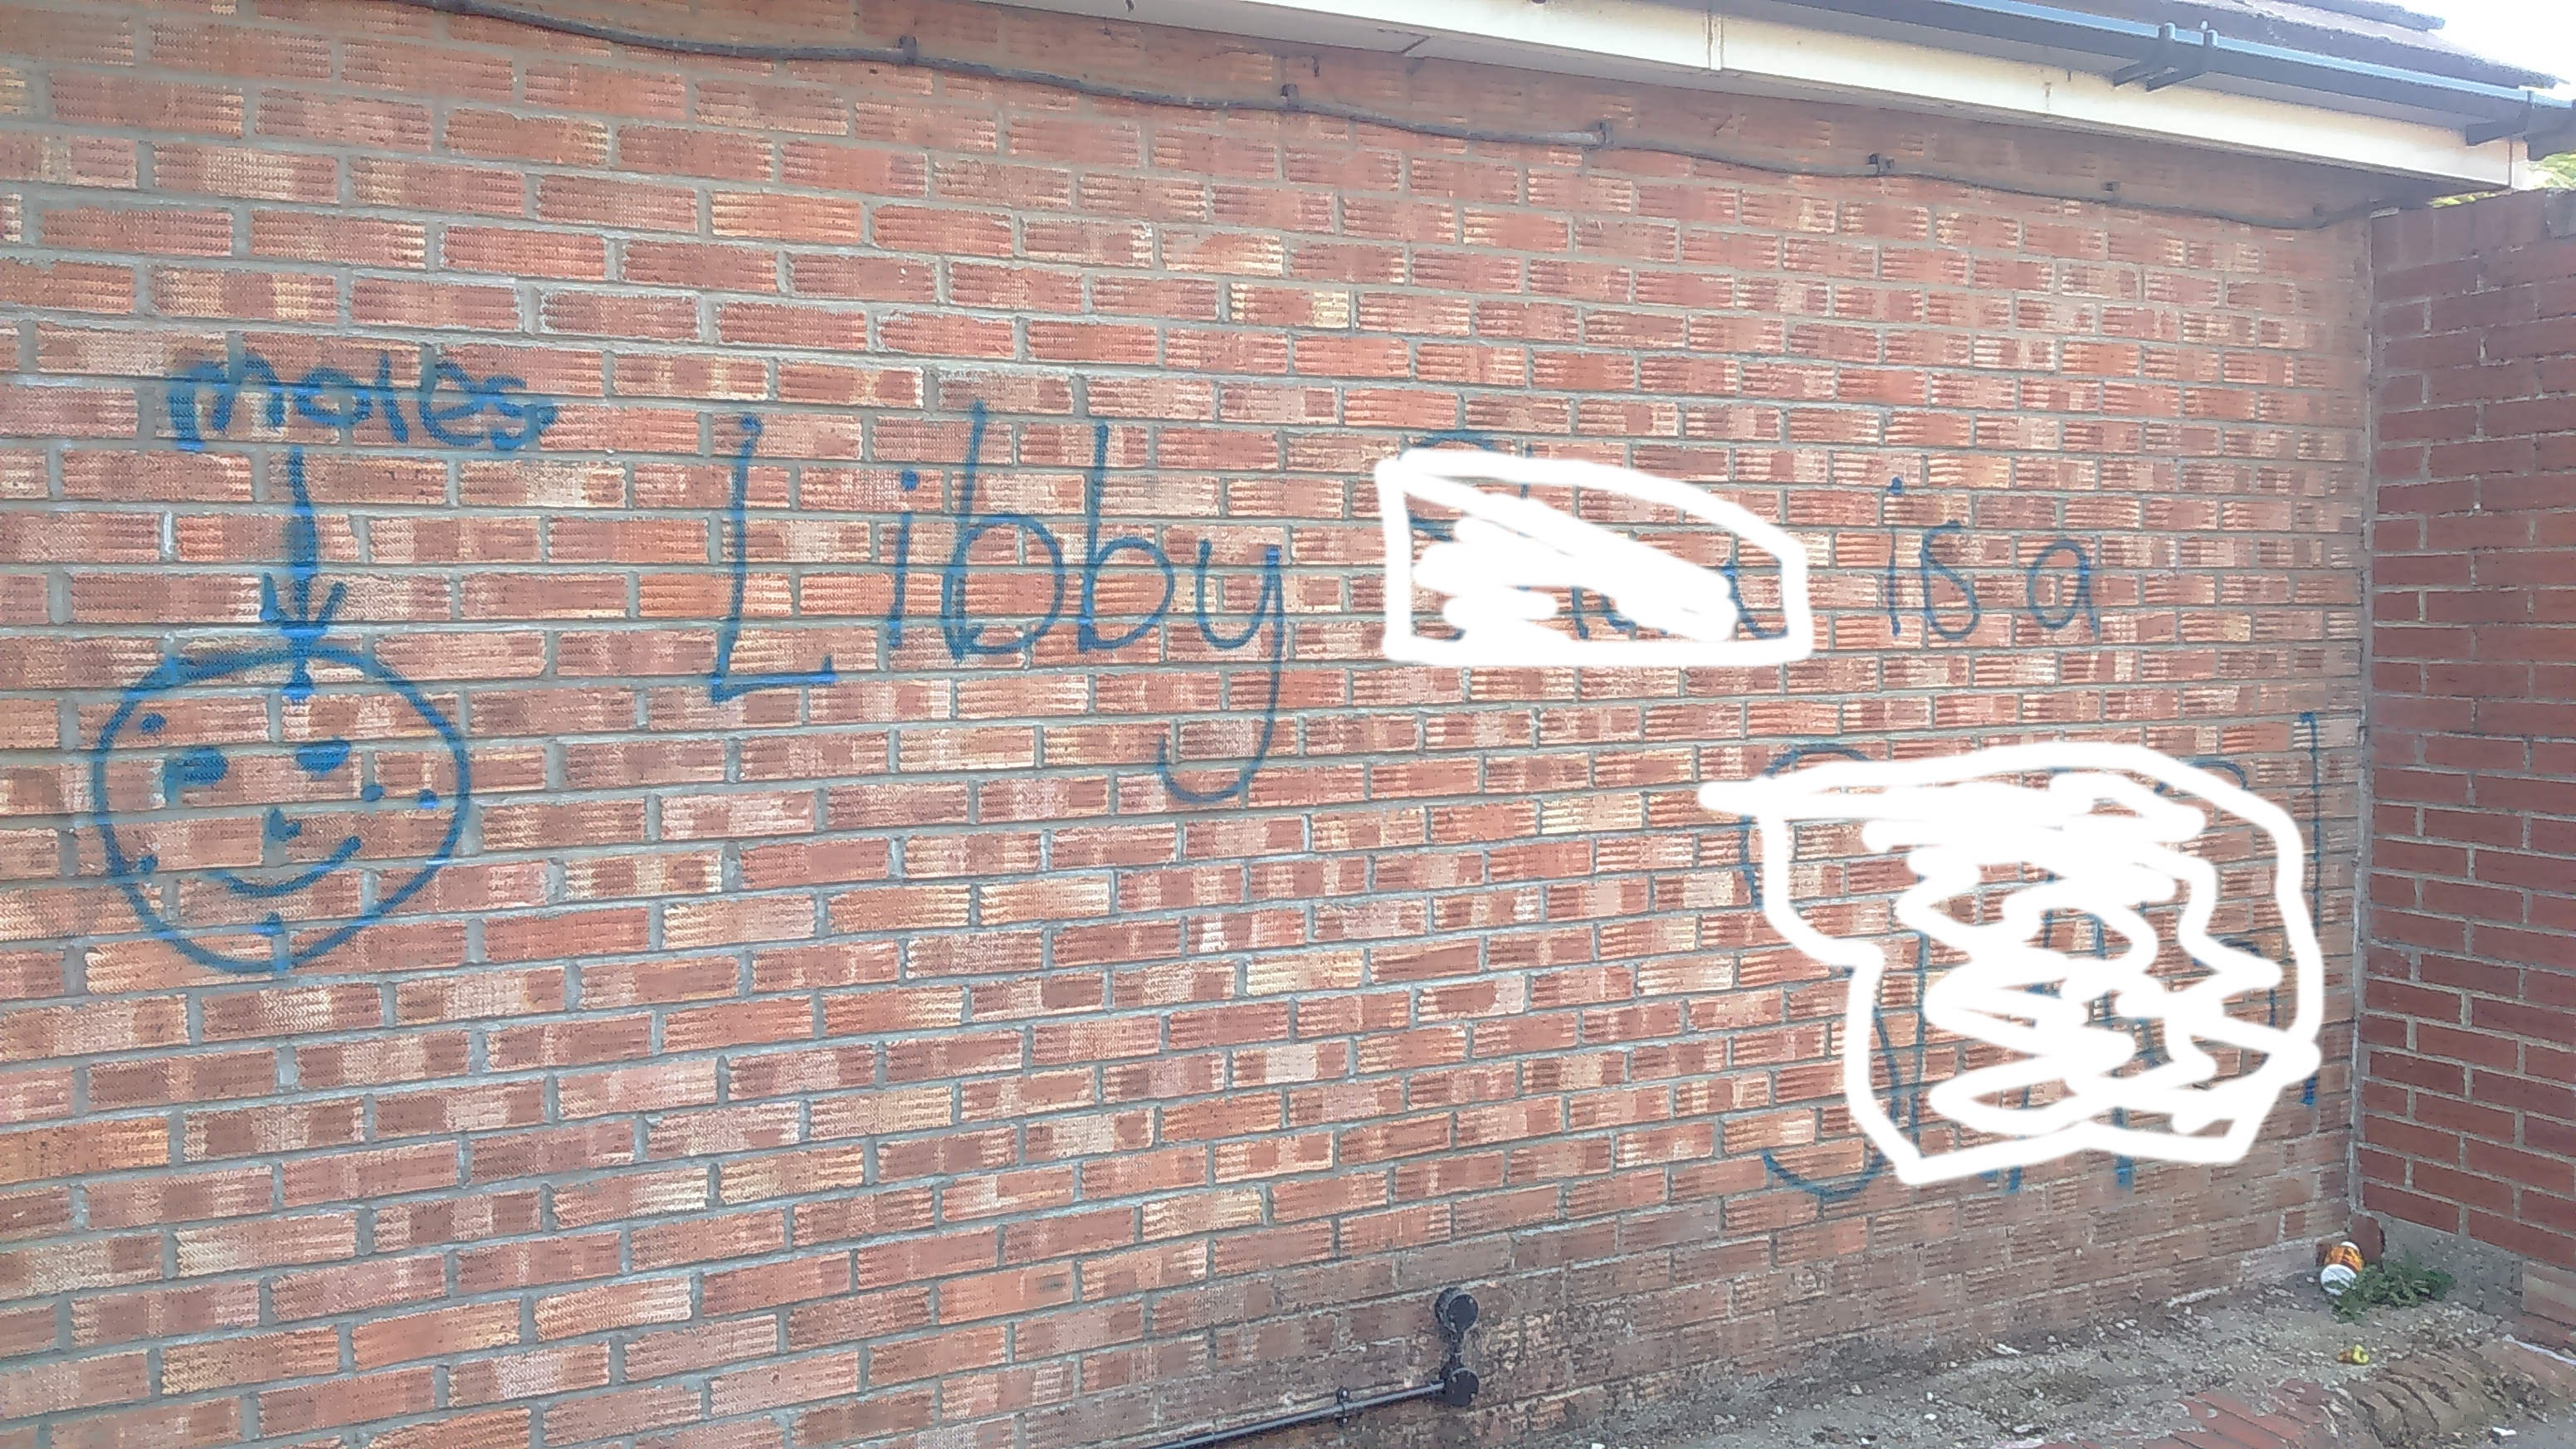 Cllr Sheena Jackson reported this offensive graffiti in the Tennent Road area. There has been an increase in graffiti issues in the area with some residents blaming the lack of high profile PCSO patrols partly for teh decline.